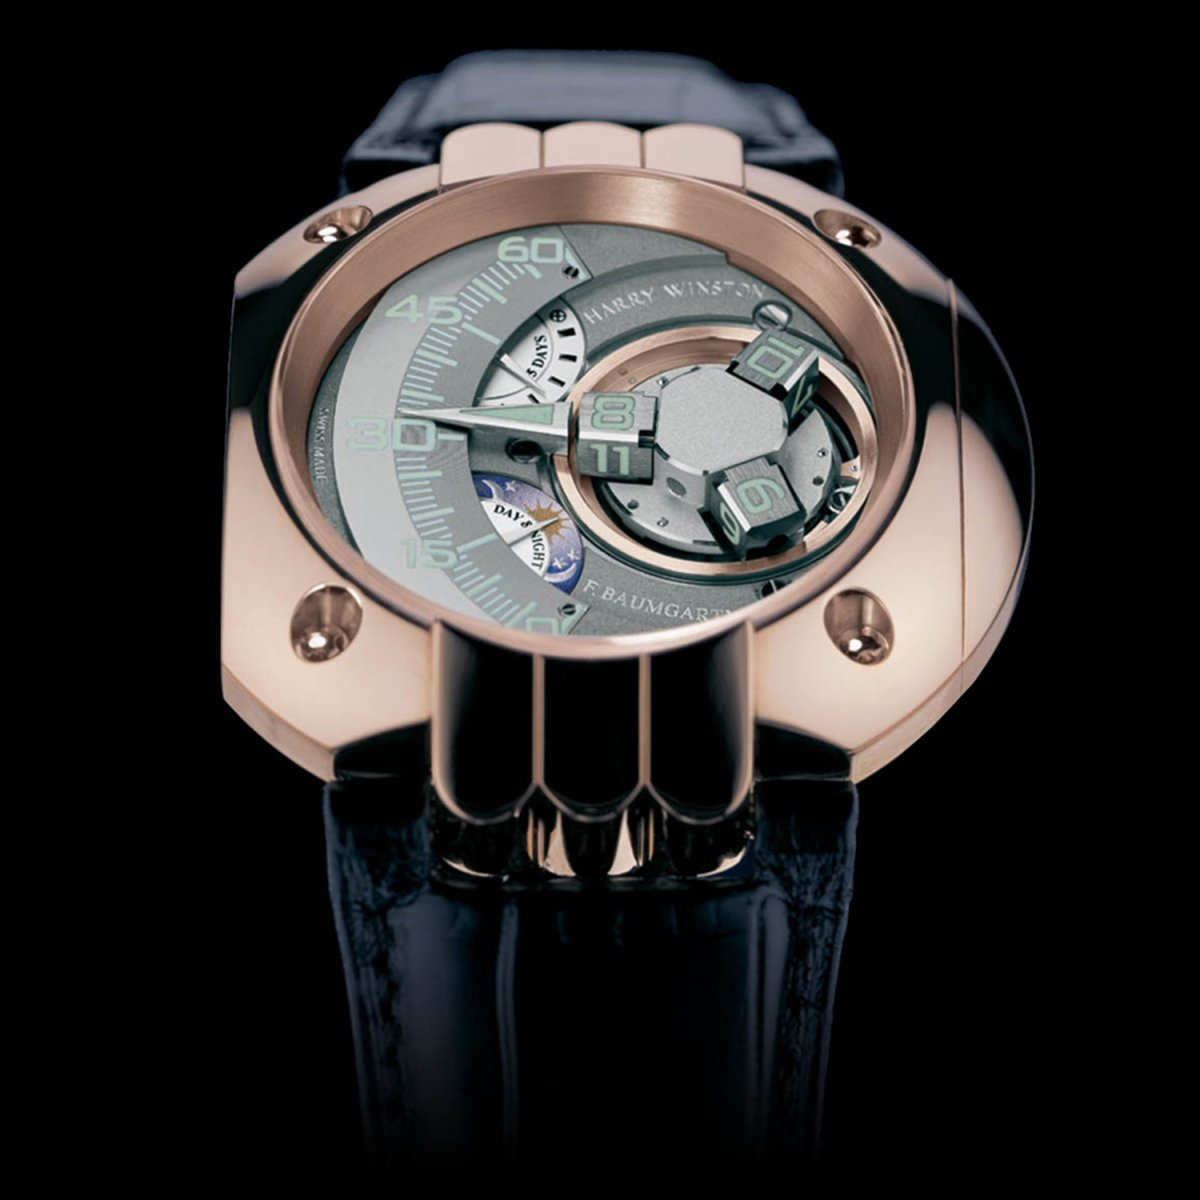 Swiss timepieces satellite watch Opus 5